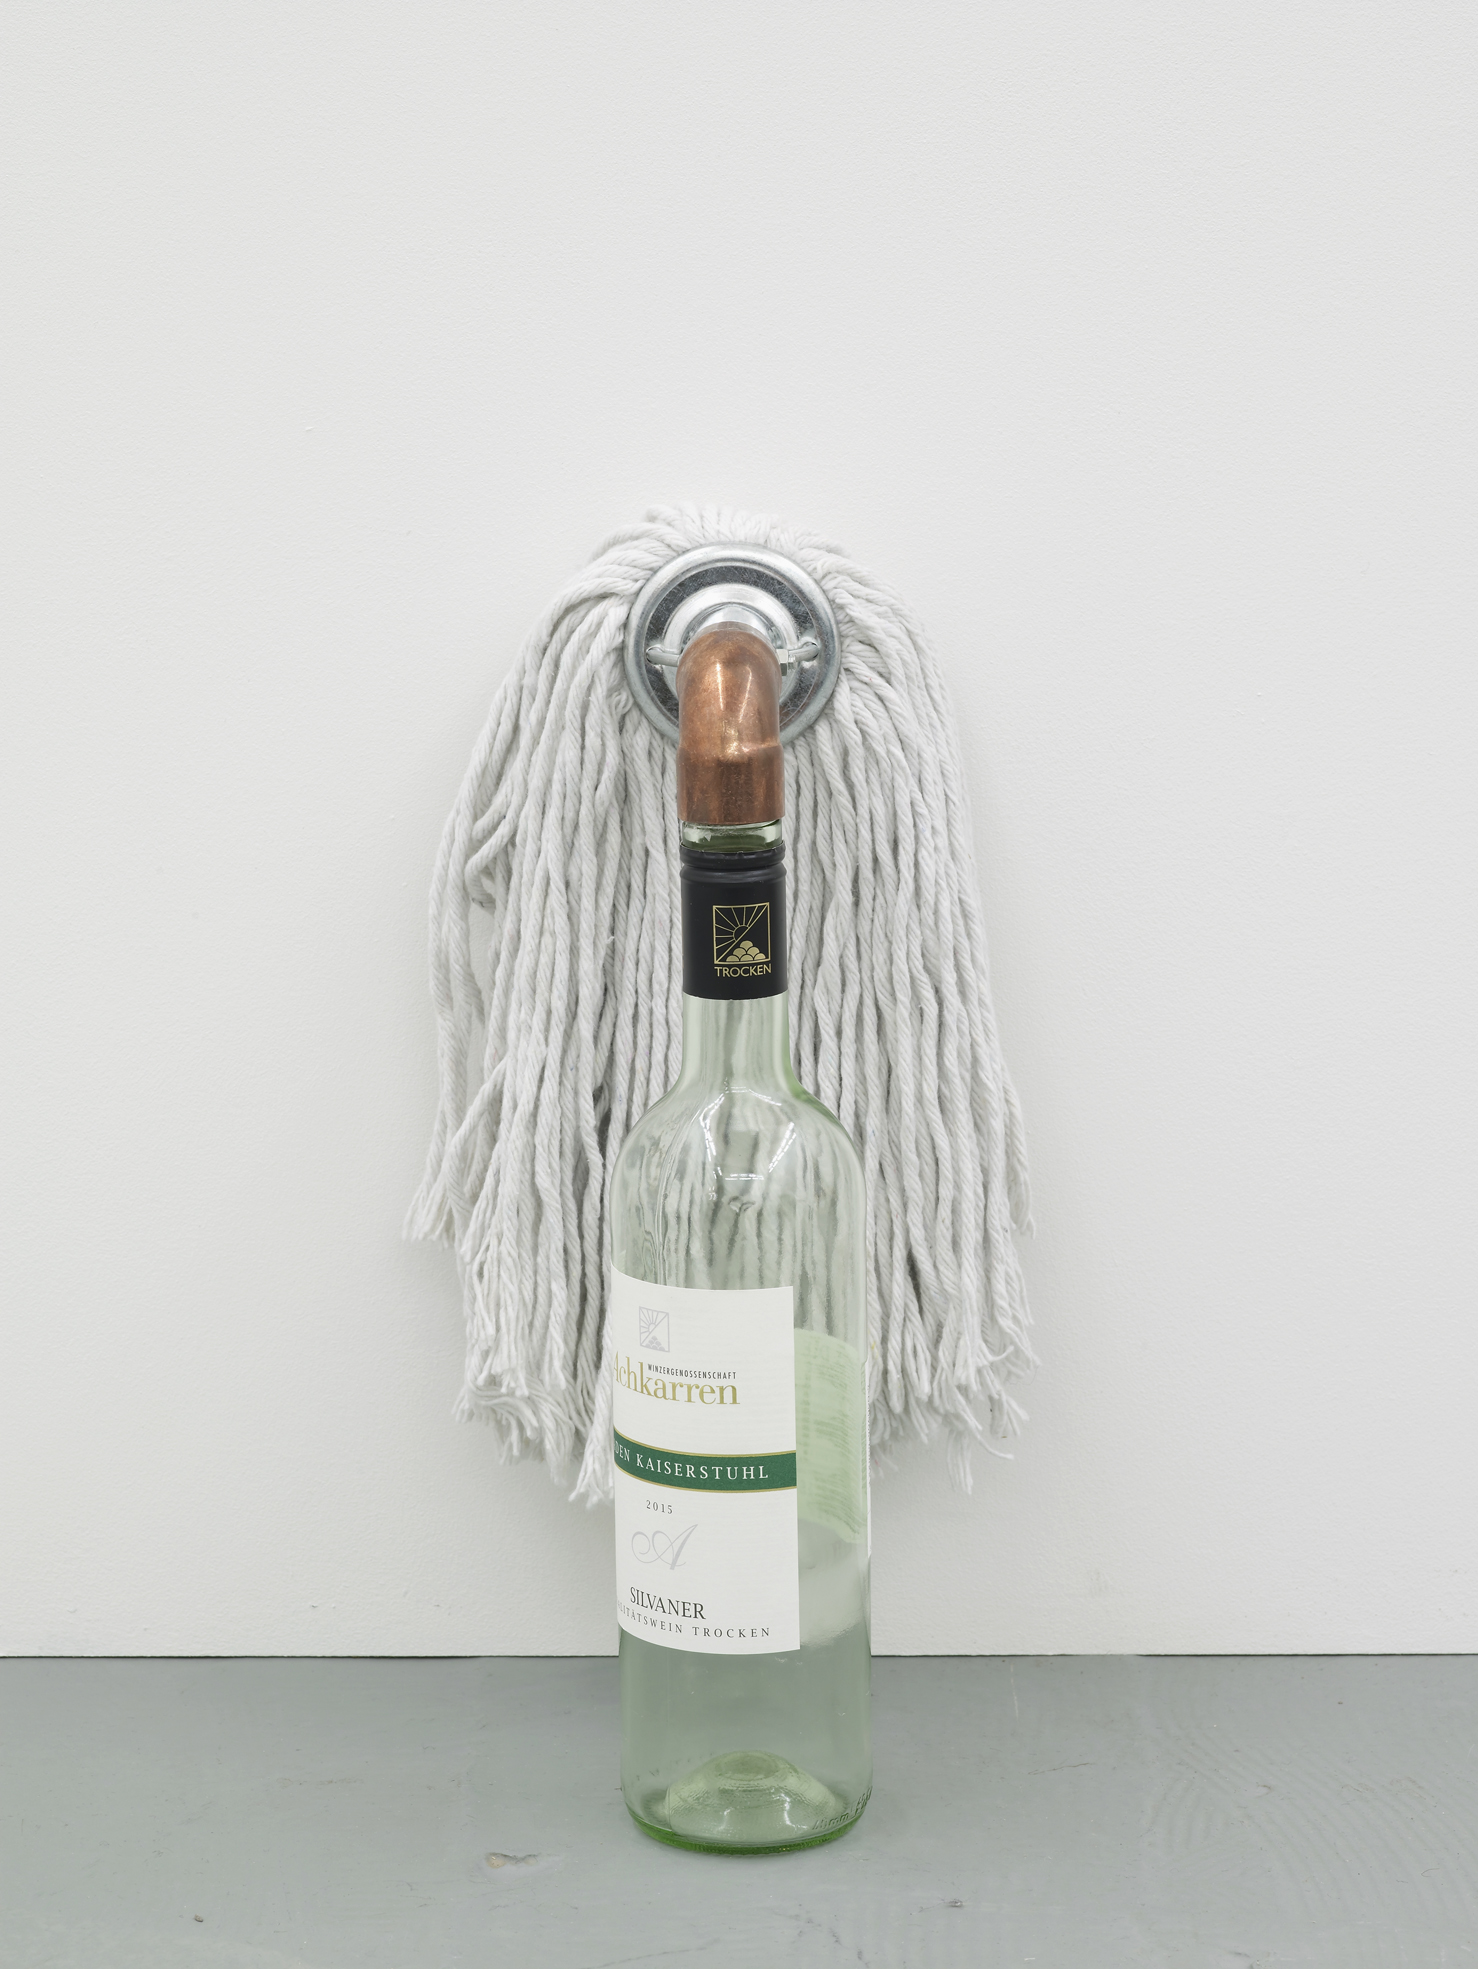 Catachresis ♯84 Head of the mop, elbow of the pipe and neck of the bottle 2016 Found materials 40 x 19 x 17 cm / 15.7 x 7.5 x 6.7 in